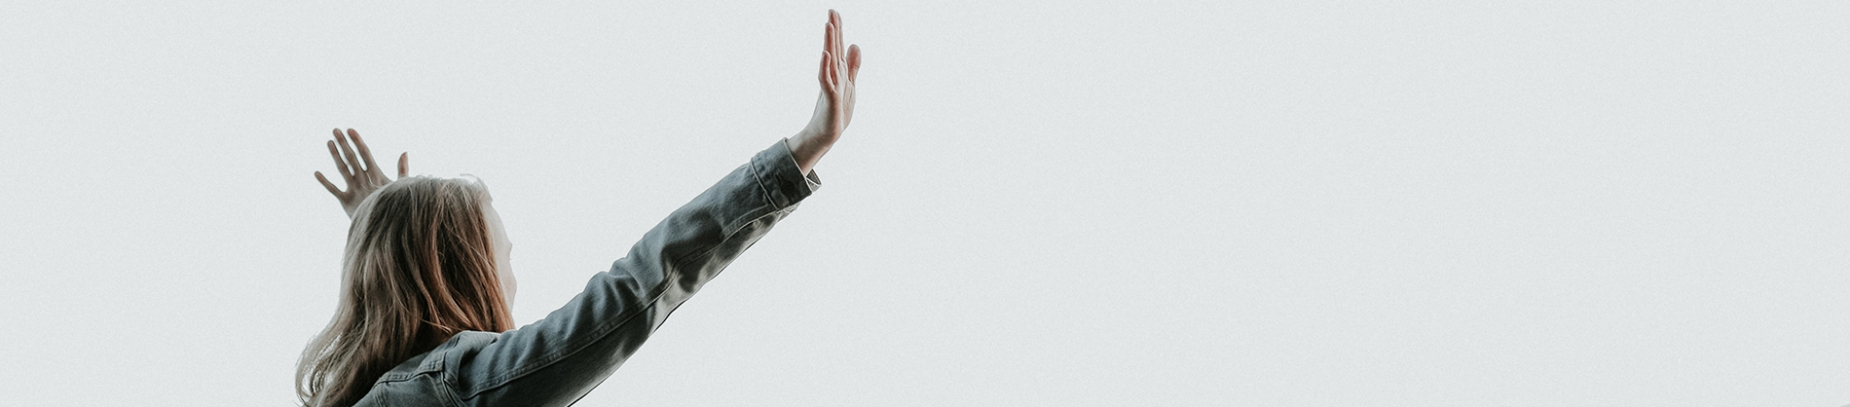 A women in a denim jacket with her arms up in the air